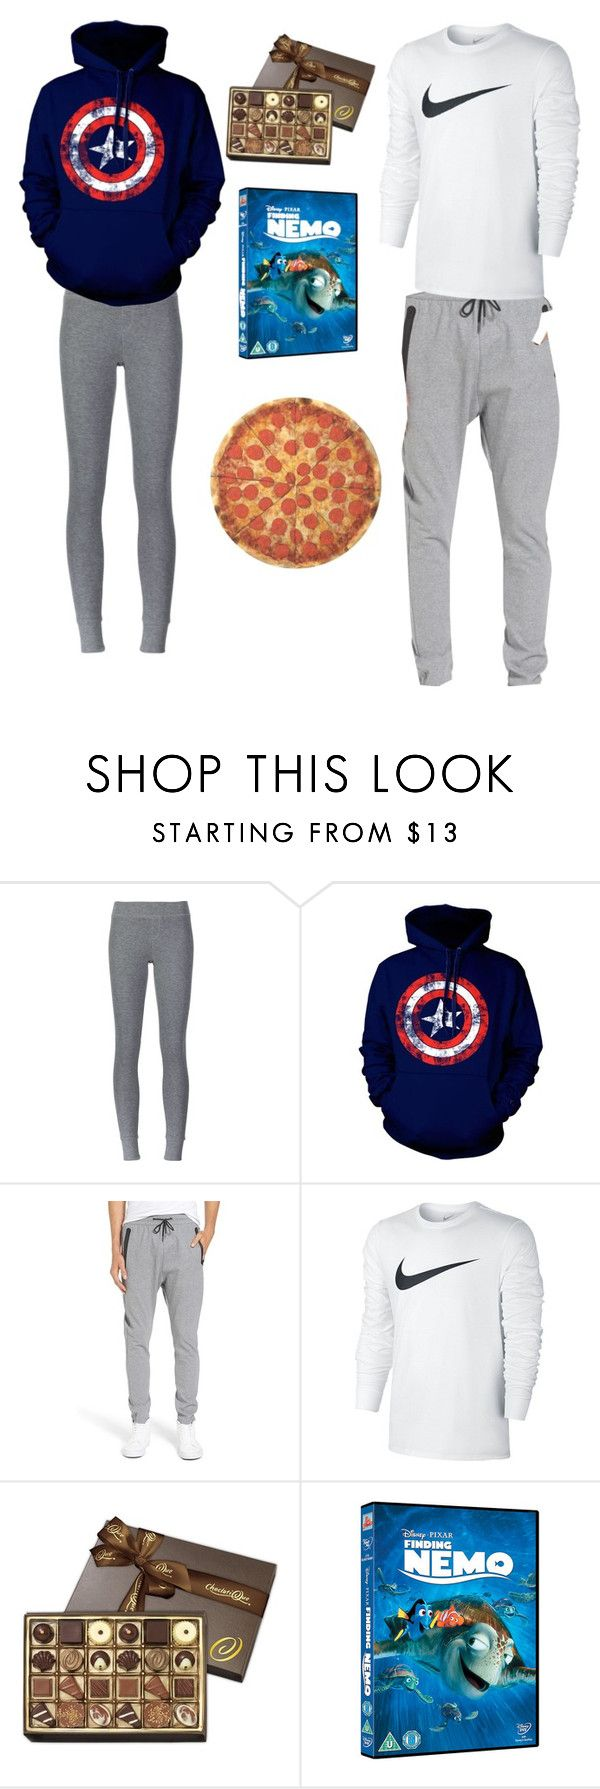 """Your boyfriend cuddling you because you started"" by cecily-gravesen ❤ liked on Polyvore featuring ATM by Anthony Thomas Melillo, Zanerobe, NIKE and Round Towel Co."